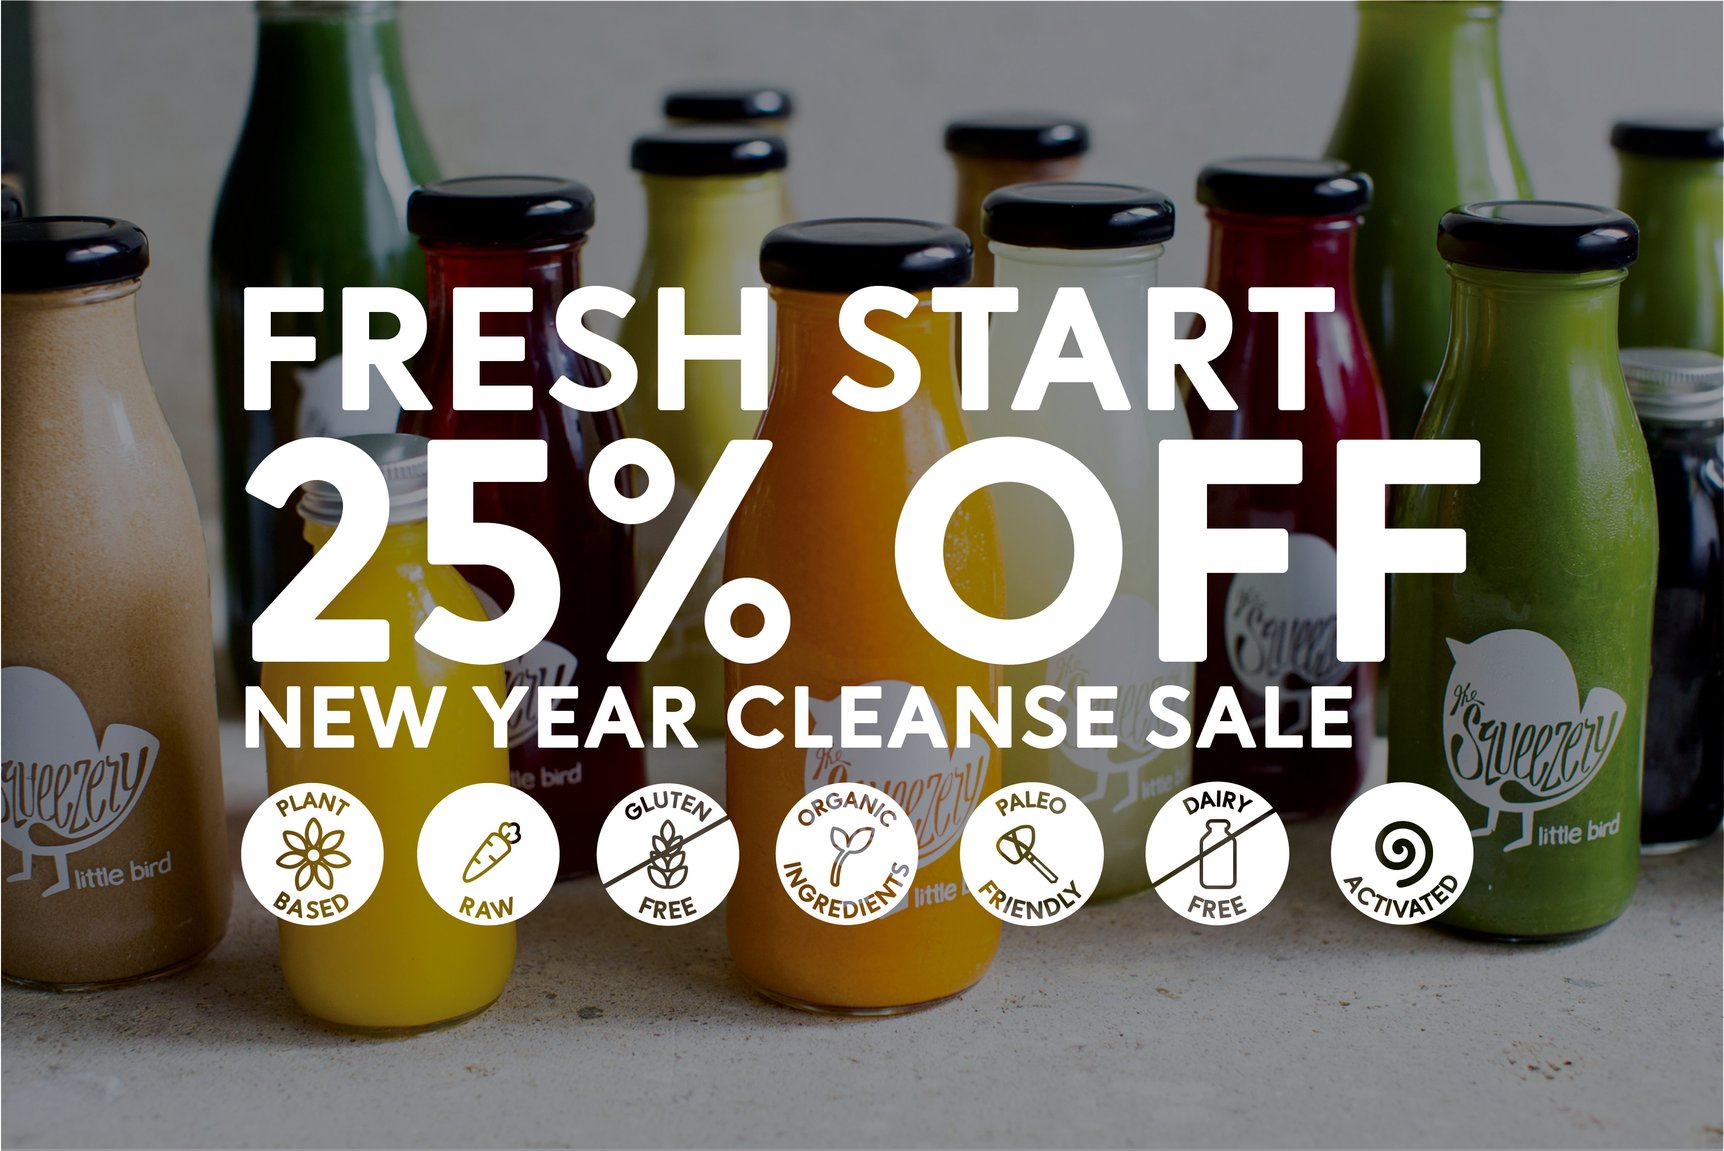 Fresh Start Juice Cleanse Sale